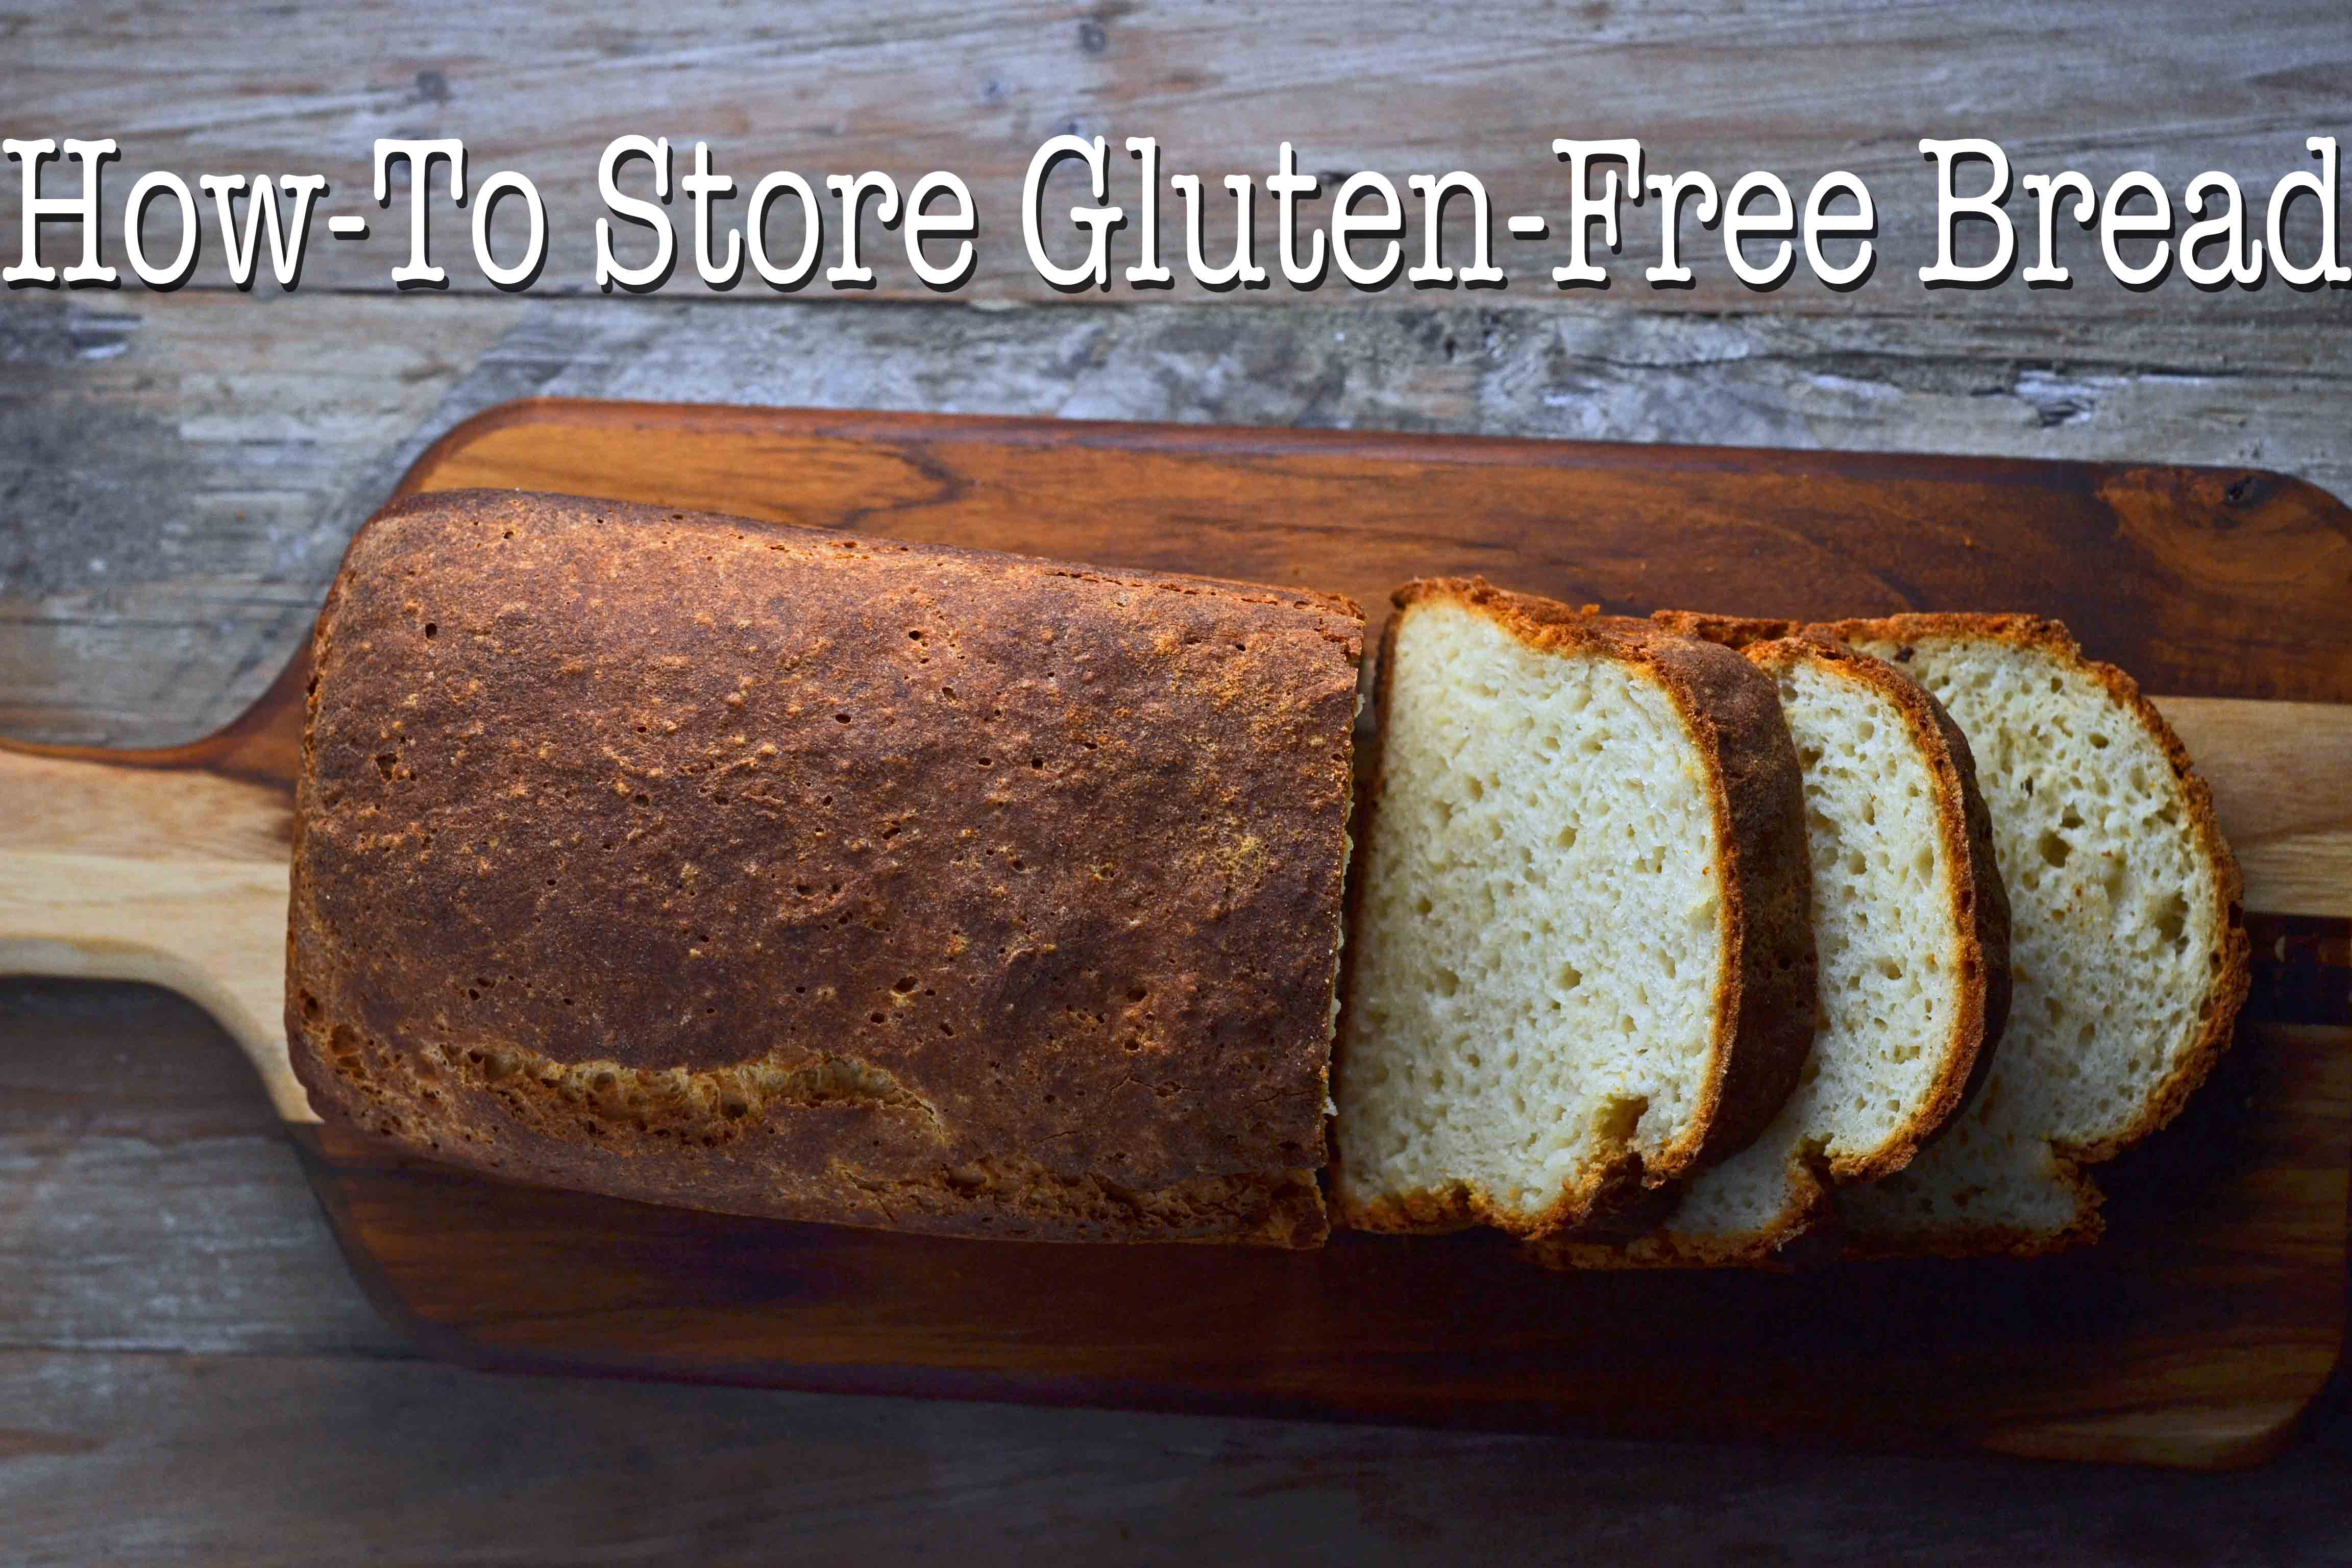 How-To Store Gluten-Free Bread: 10 Rules To Live By